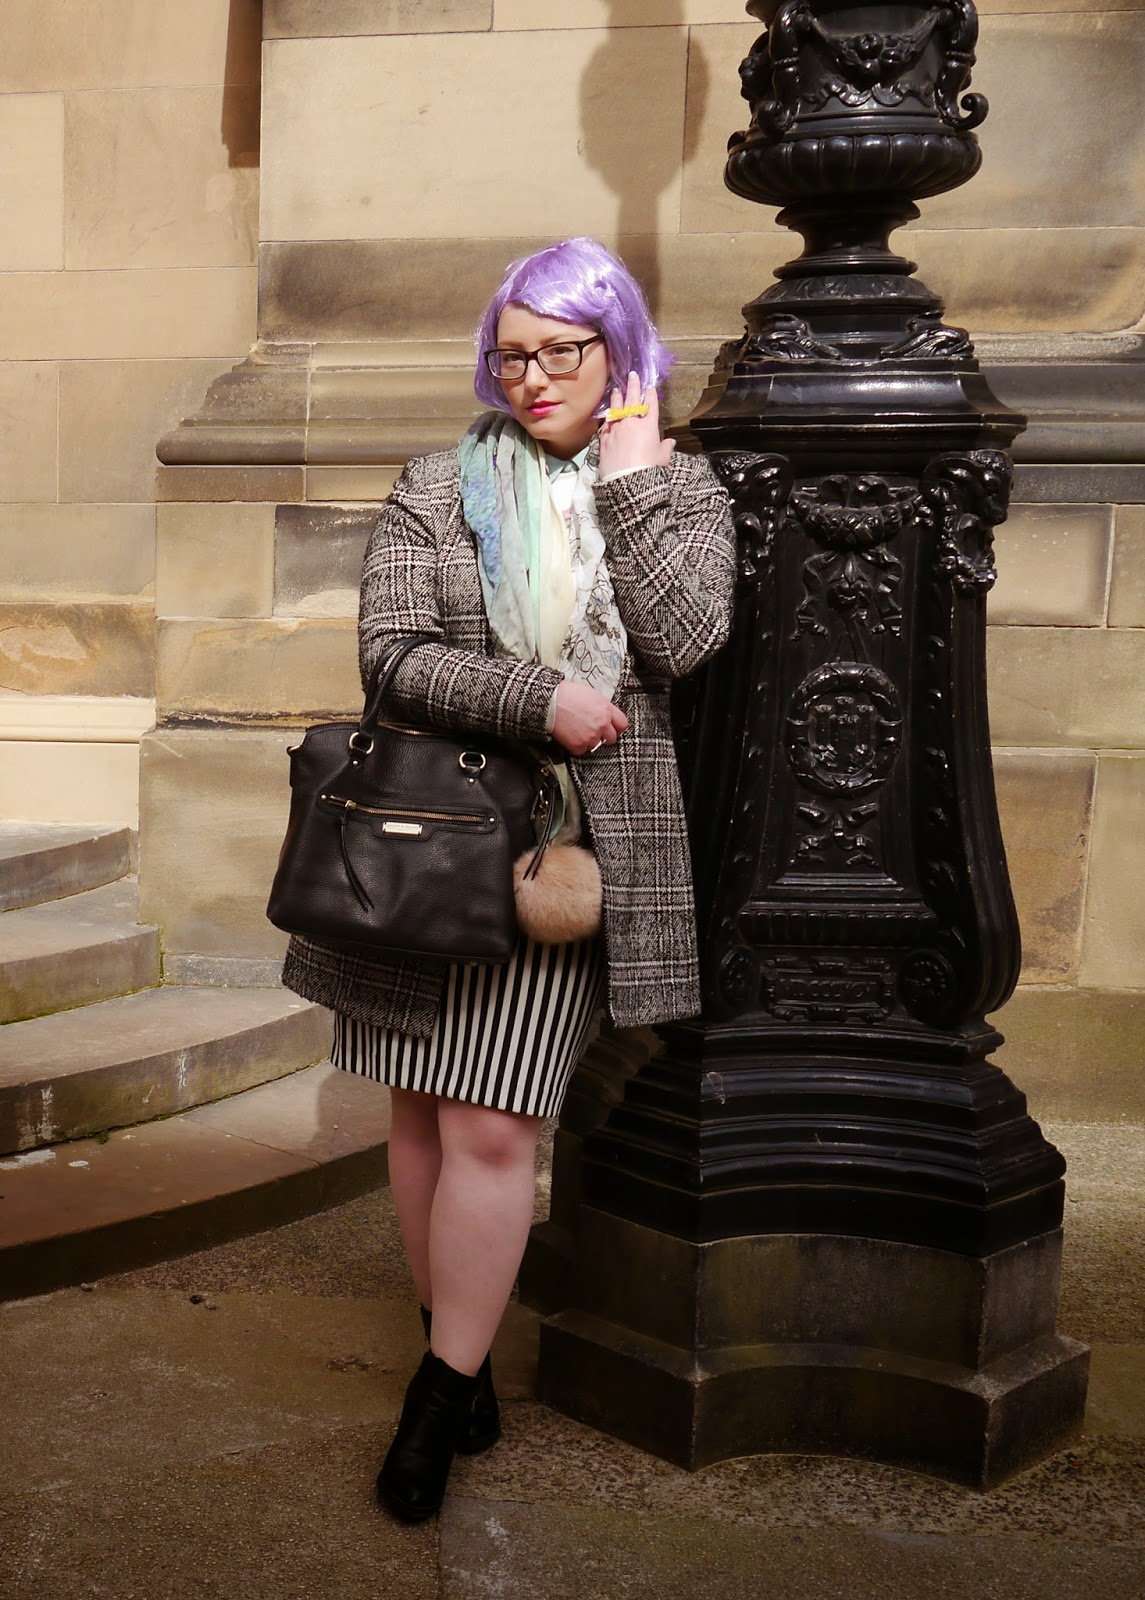 #scotstreetstyle, #EdFashion, Edinburgh, street style, monochrome, stripes, Breton, lilac hair, pom pom, Edinburgh University, tartan